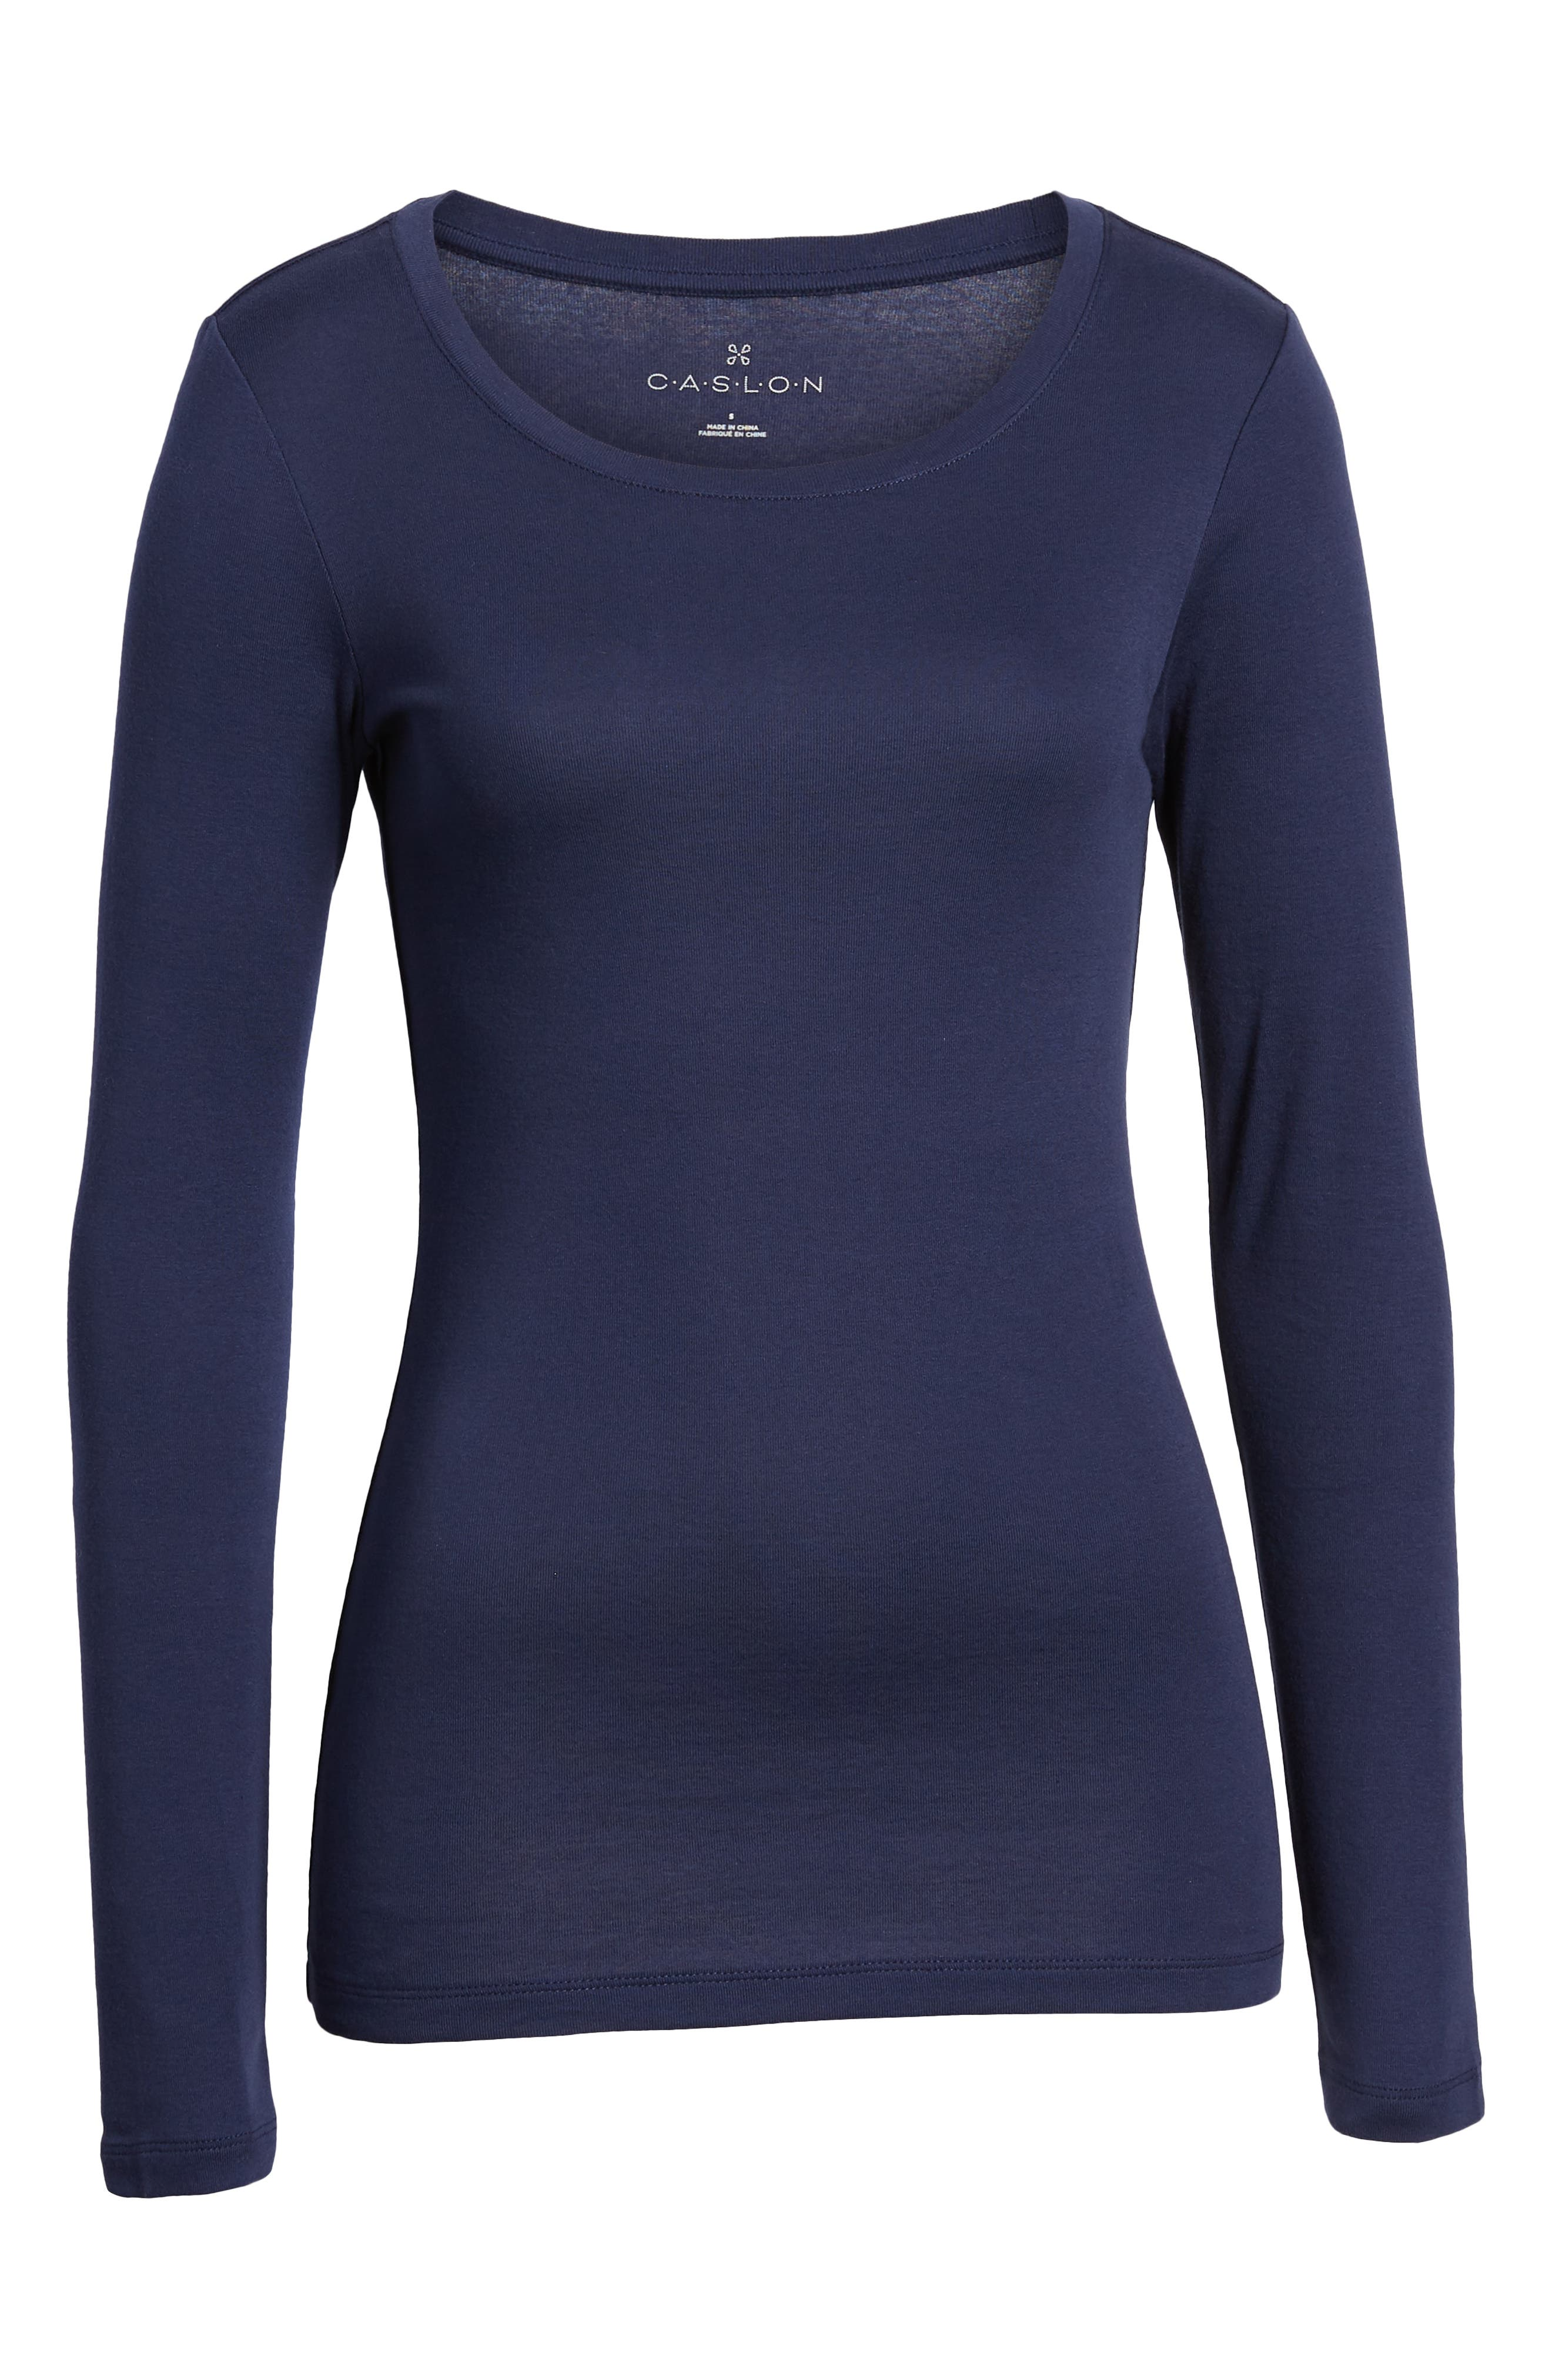 Long Sleeve Scoop Neck Cotton Tee,                             Alternate thumbnail 7, color,                             NAVY PEACOAT